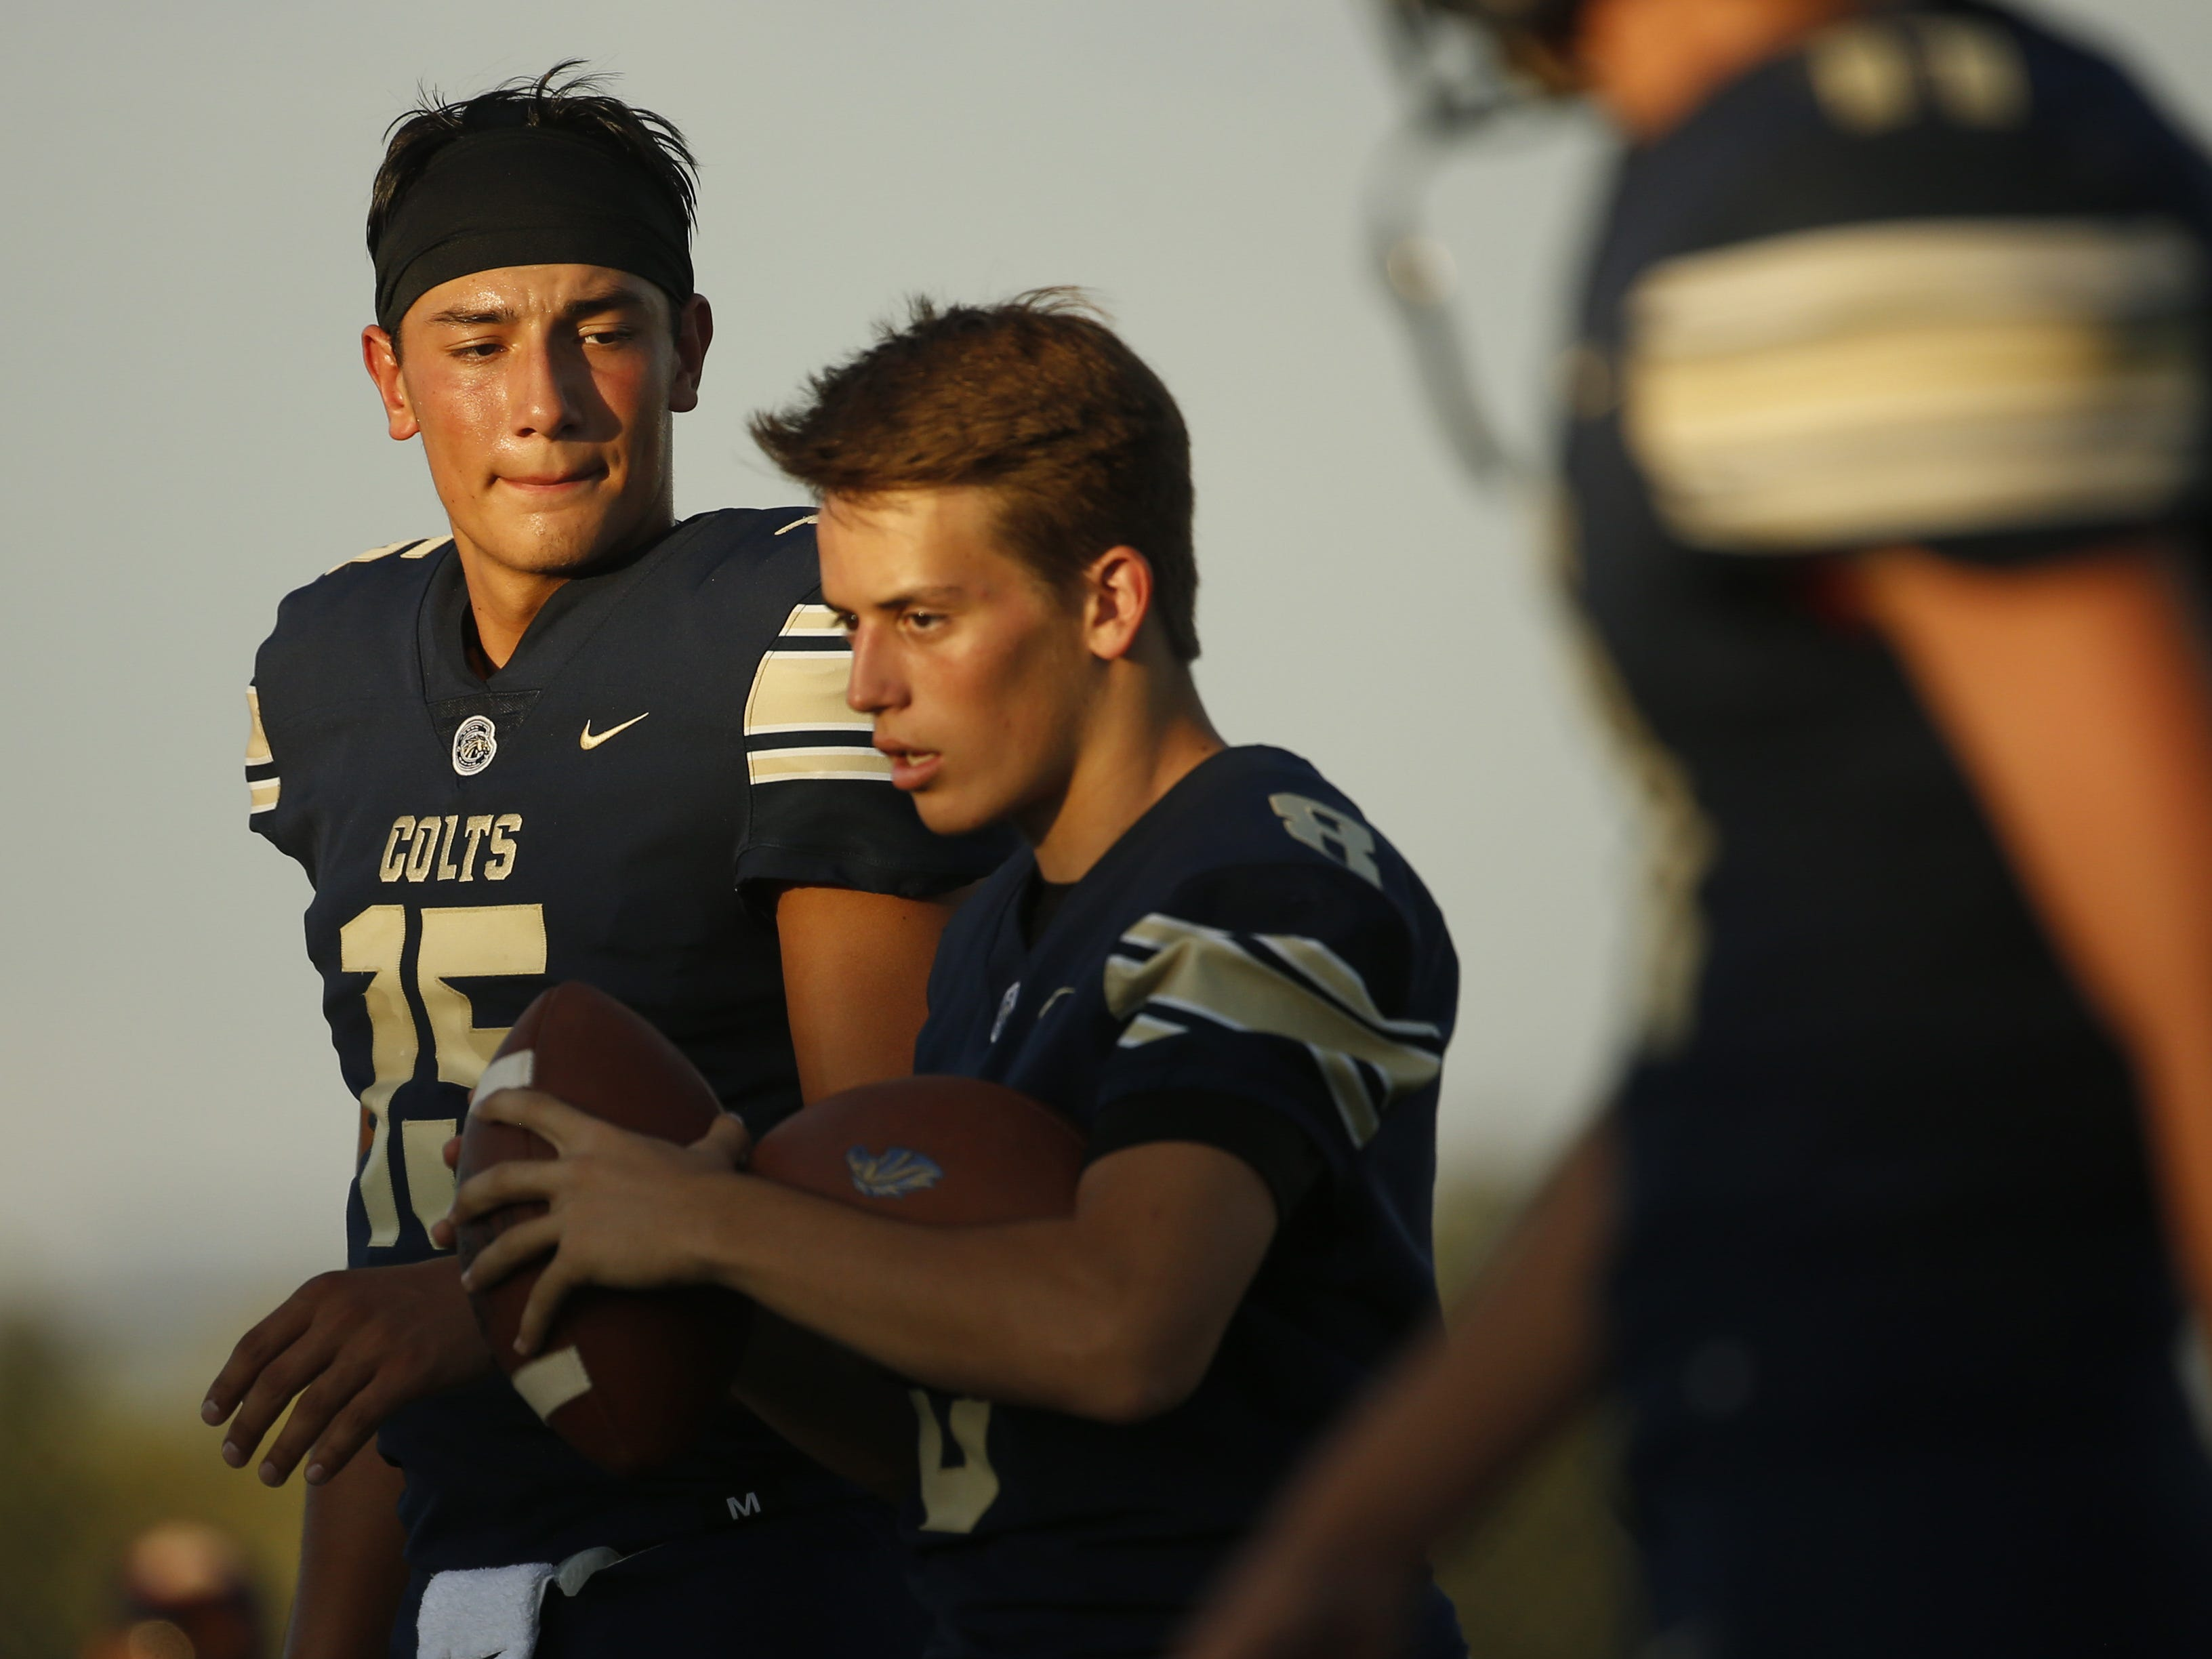 Casteel's quarterback Gunnar Cruz (15) warms up with teammates before a game against Centennial at Casteel High School in Queen Creek, Ariz. on Aug. 17, 2018.